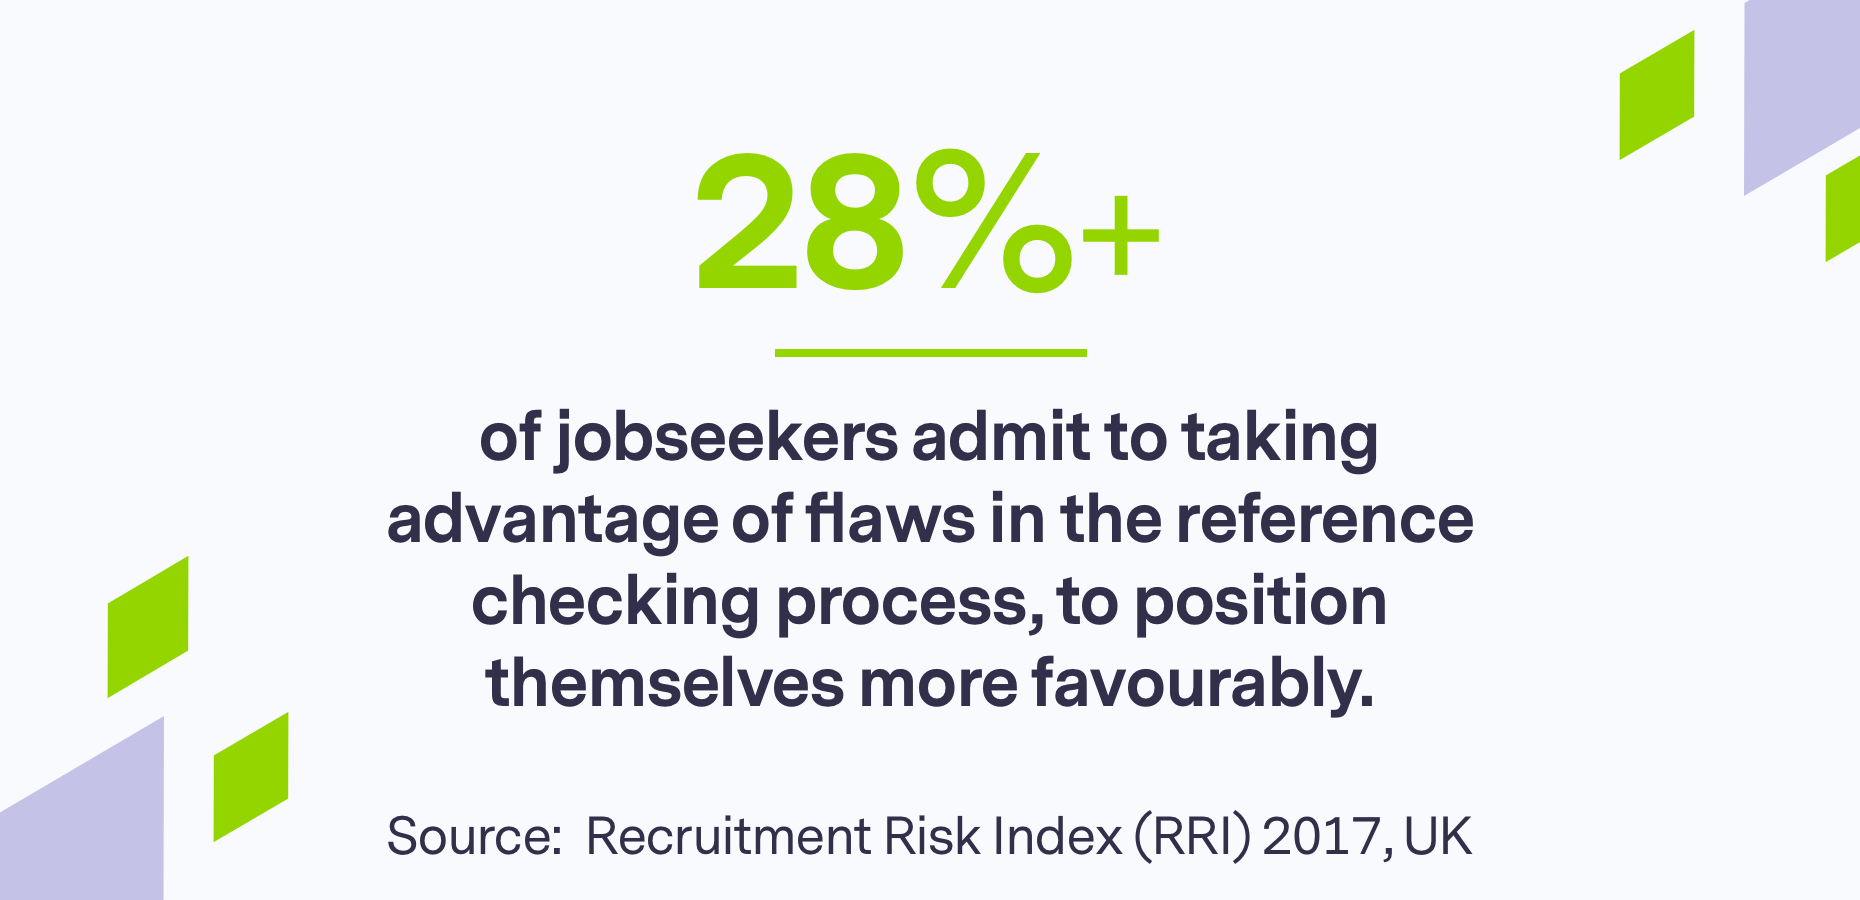 stat from recruitment risk index